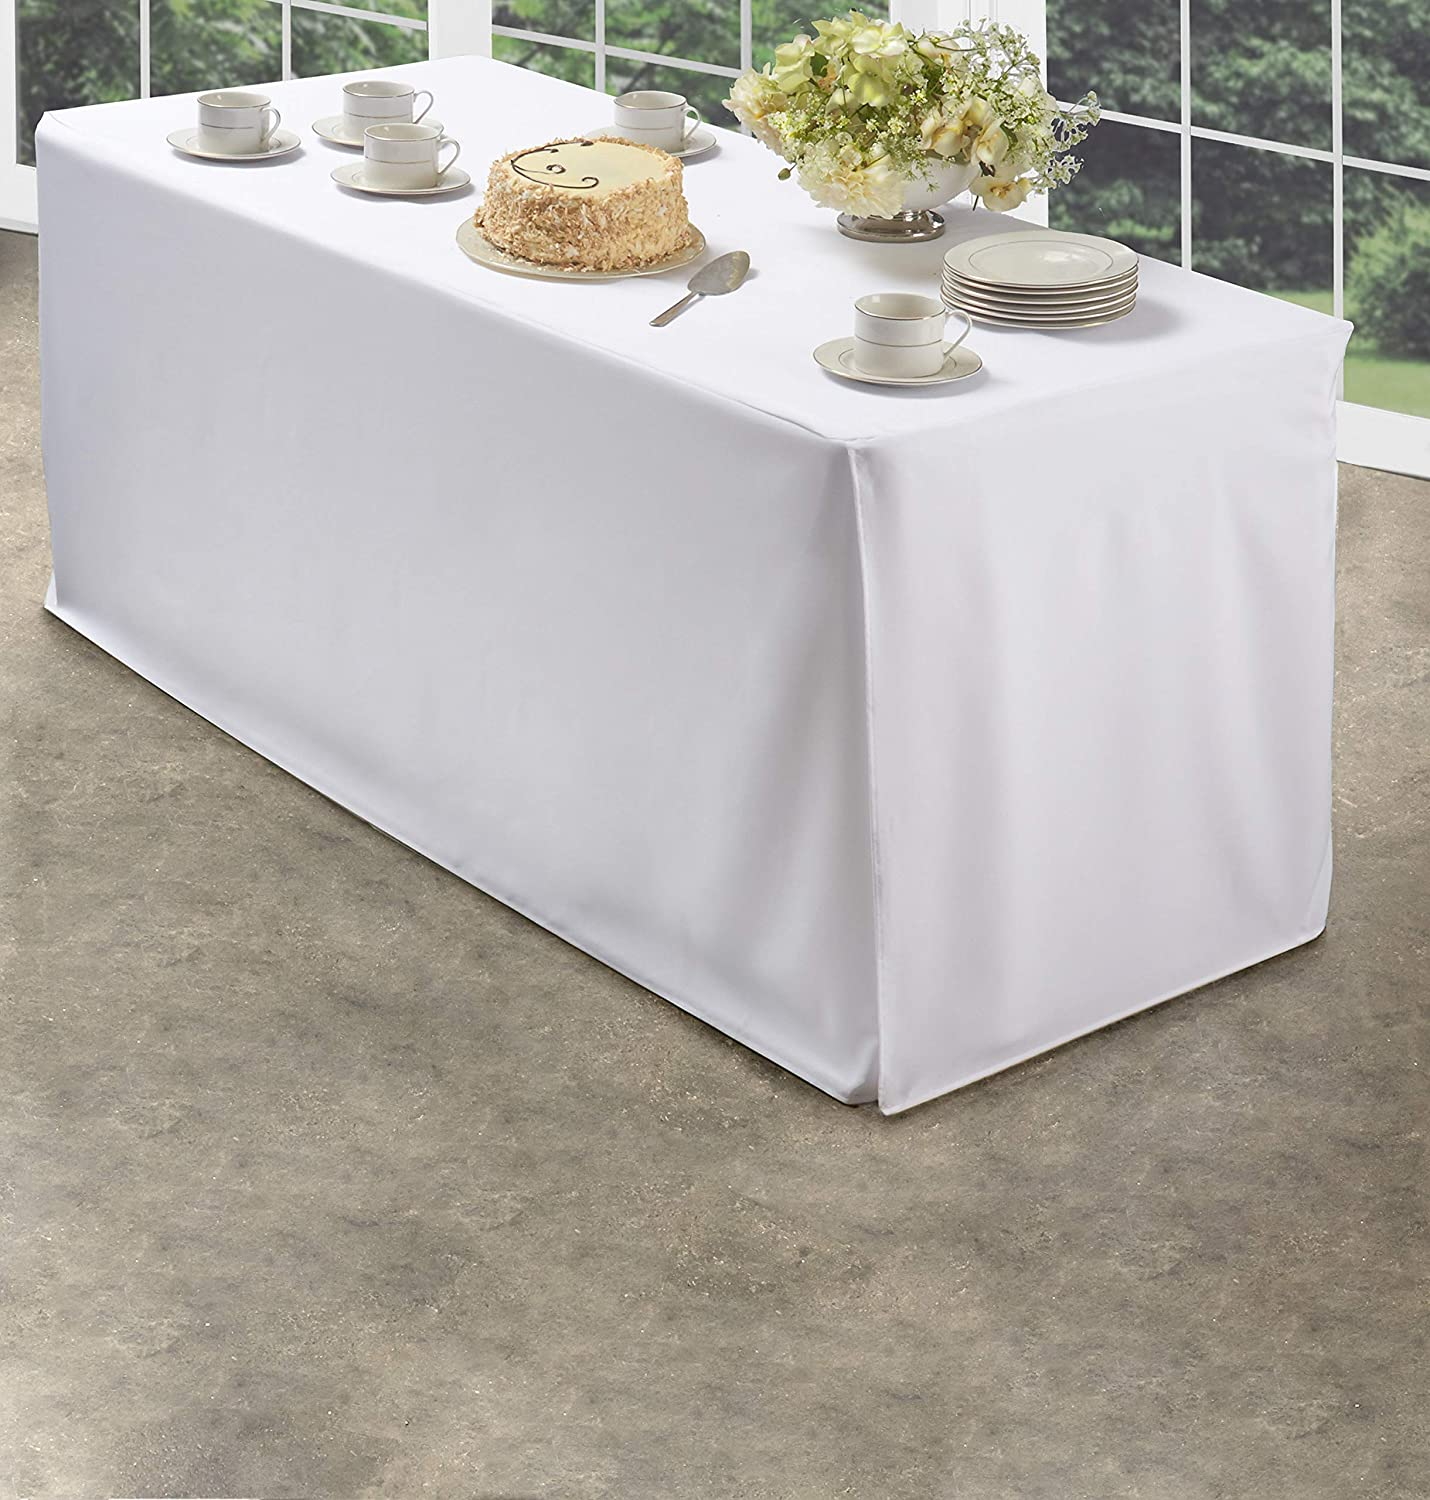 Amazon Com Folding Table Cover Fitted Tablecloth For 4 Foot Folding Table Ivory Home Kitchen